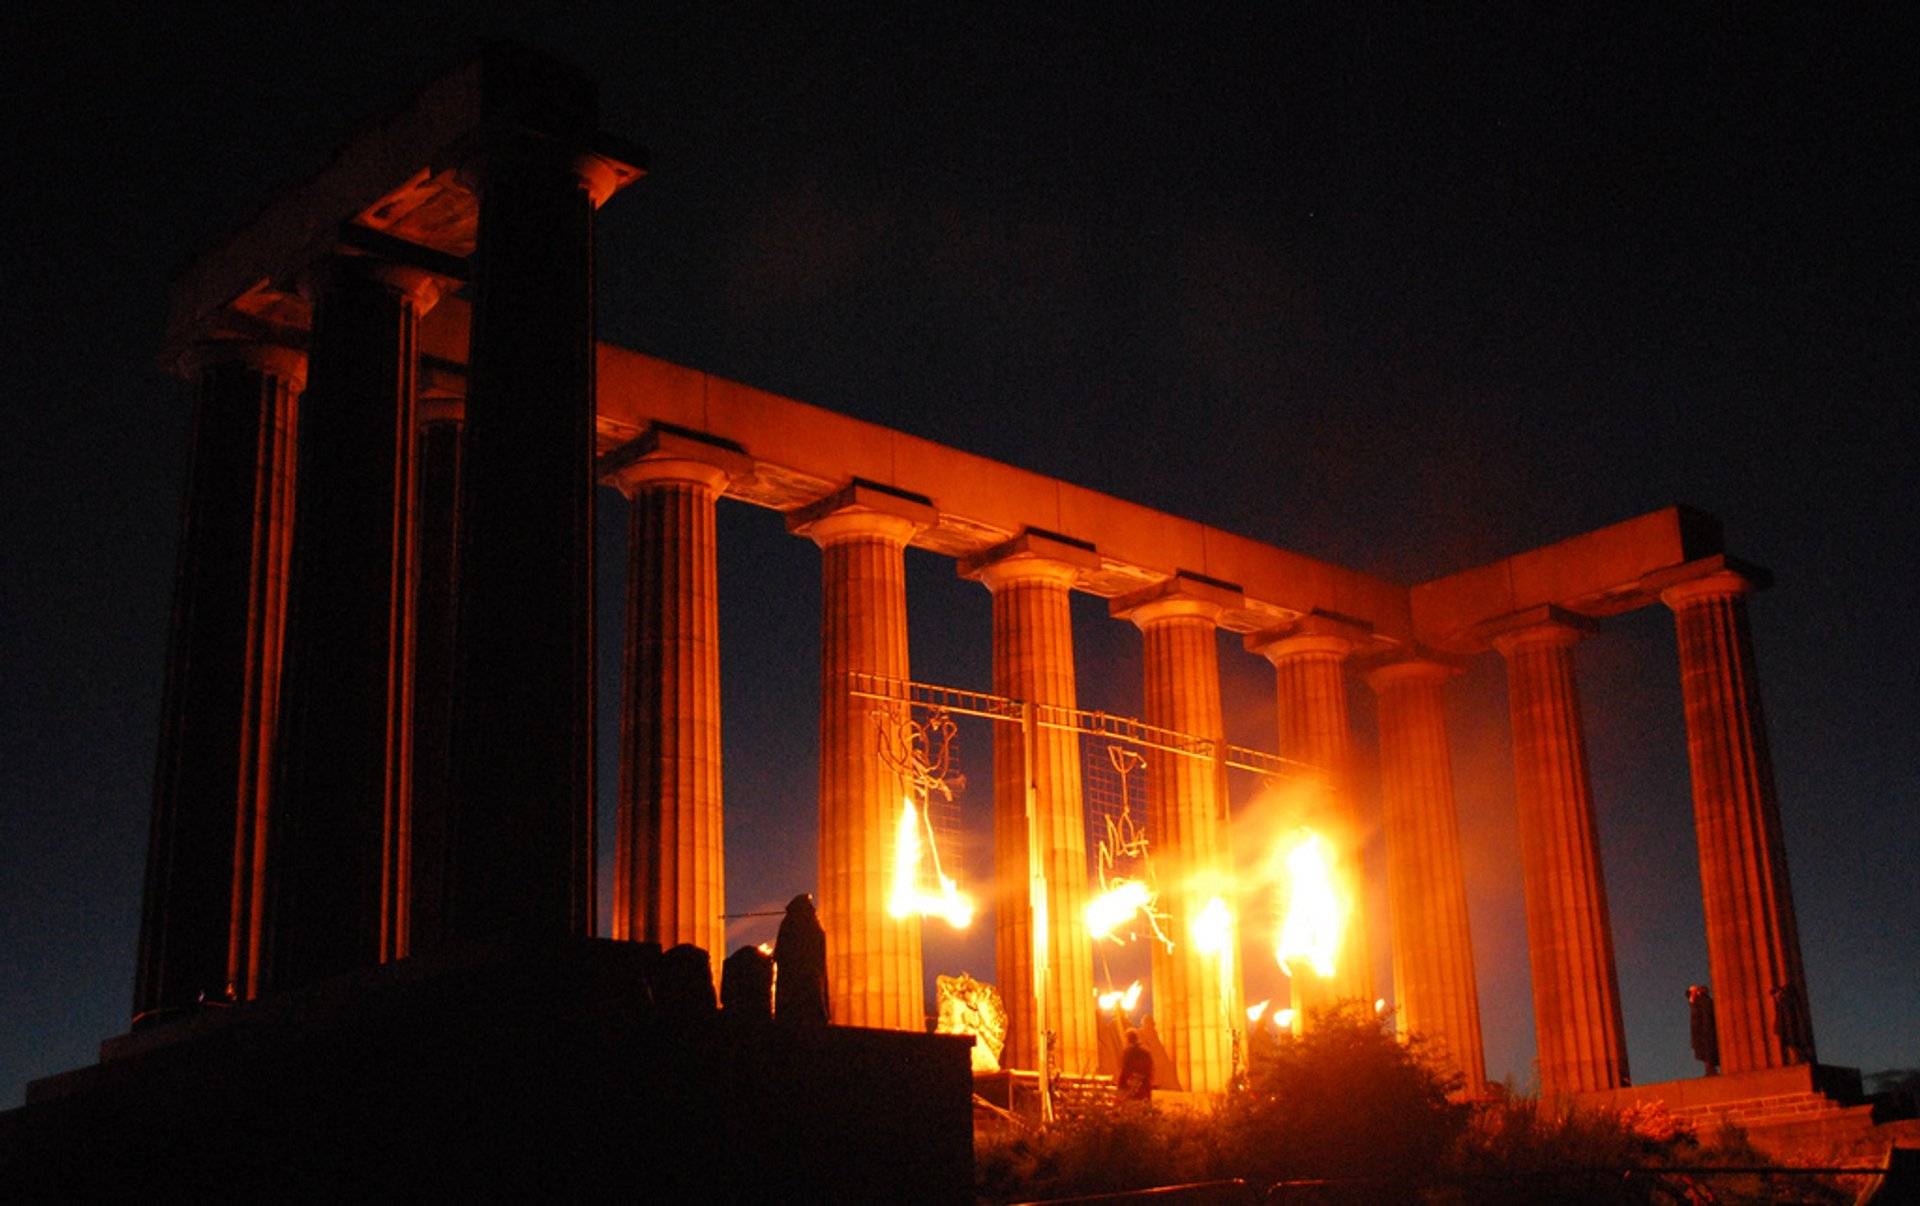 Best time to see Beltane Fire Festival in Edinburgh 2020